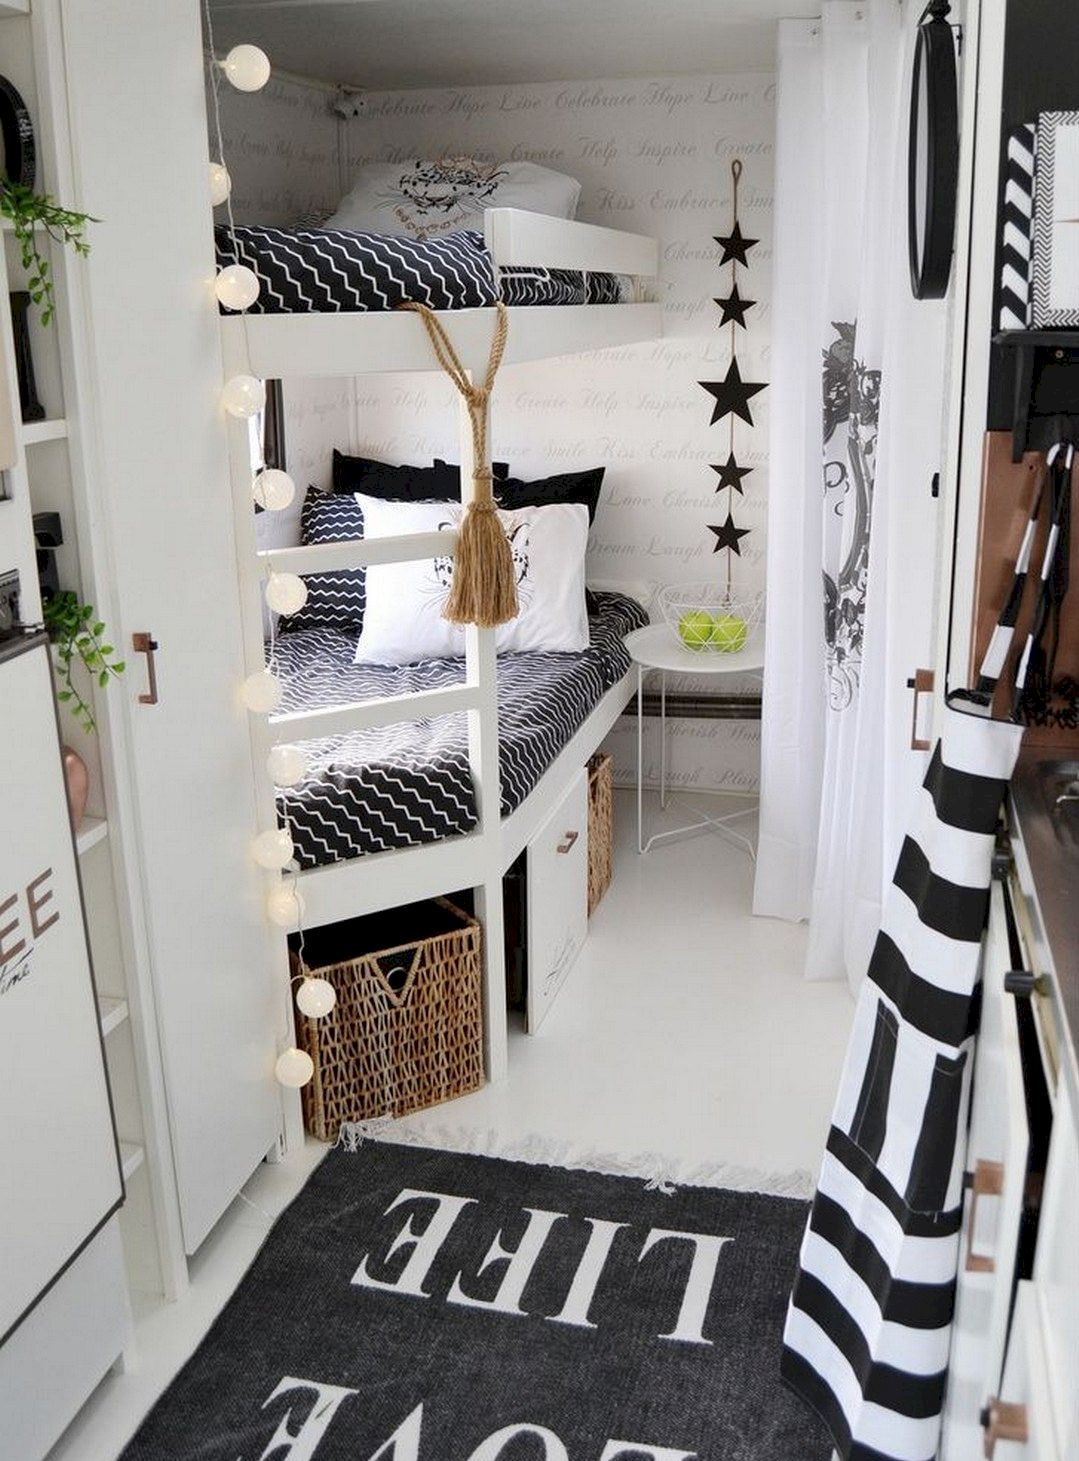 Decorate your RV bedroom with rugs